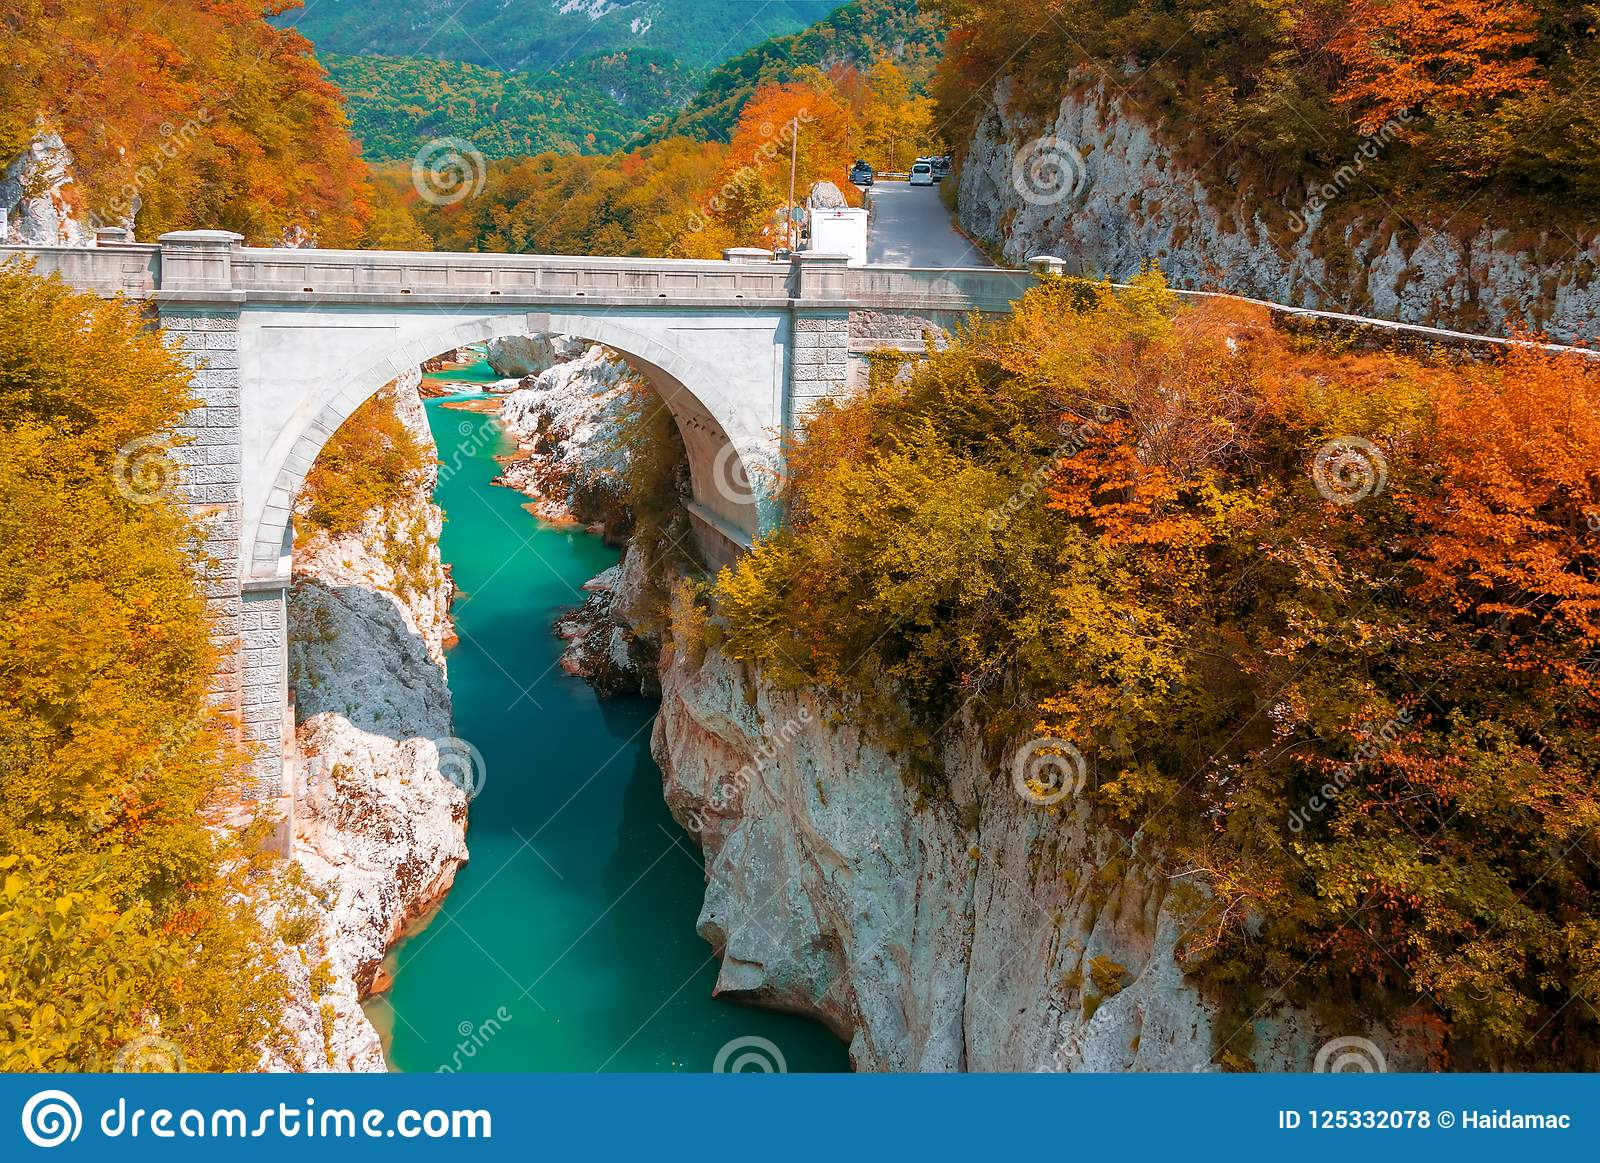 Autumn scenery of Soca river and Napoleon`s bridge near Kobarid, Slovenia